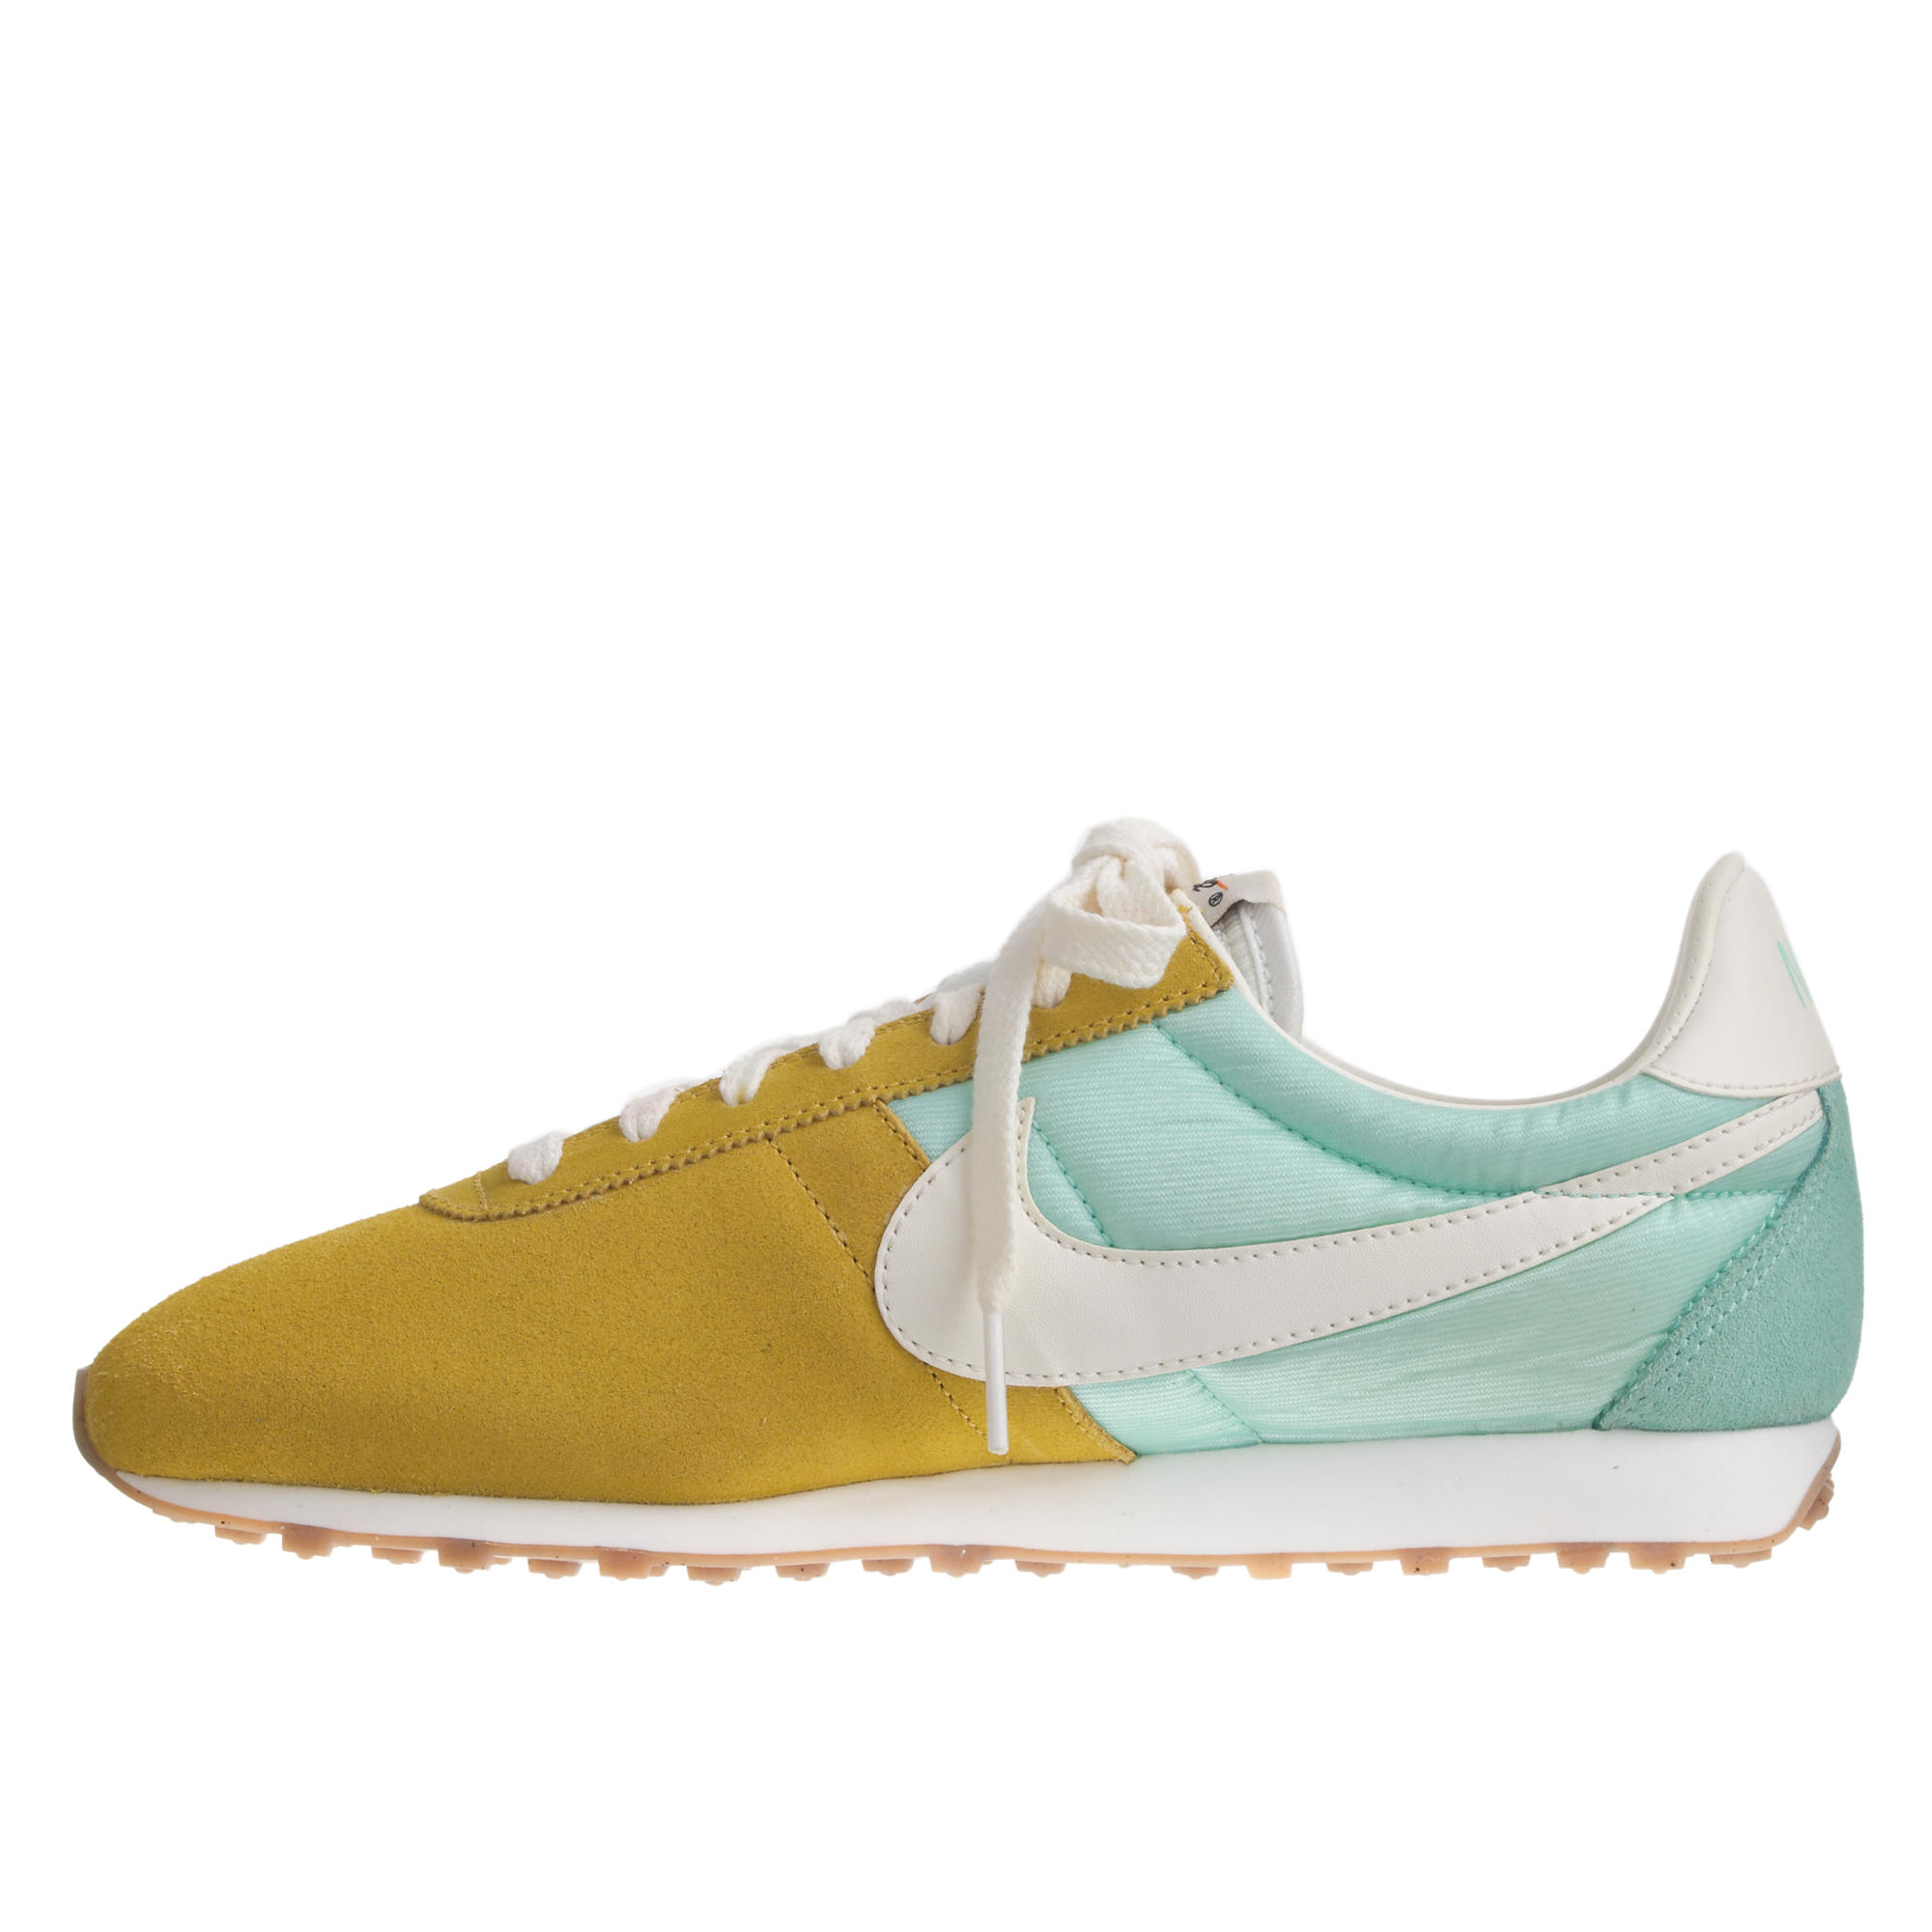 Women s Nike® vintage collection pre-Montreal racer sneakers 21889dabf3